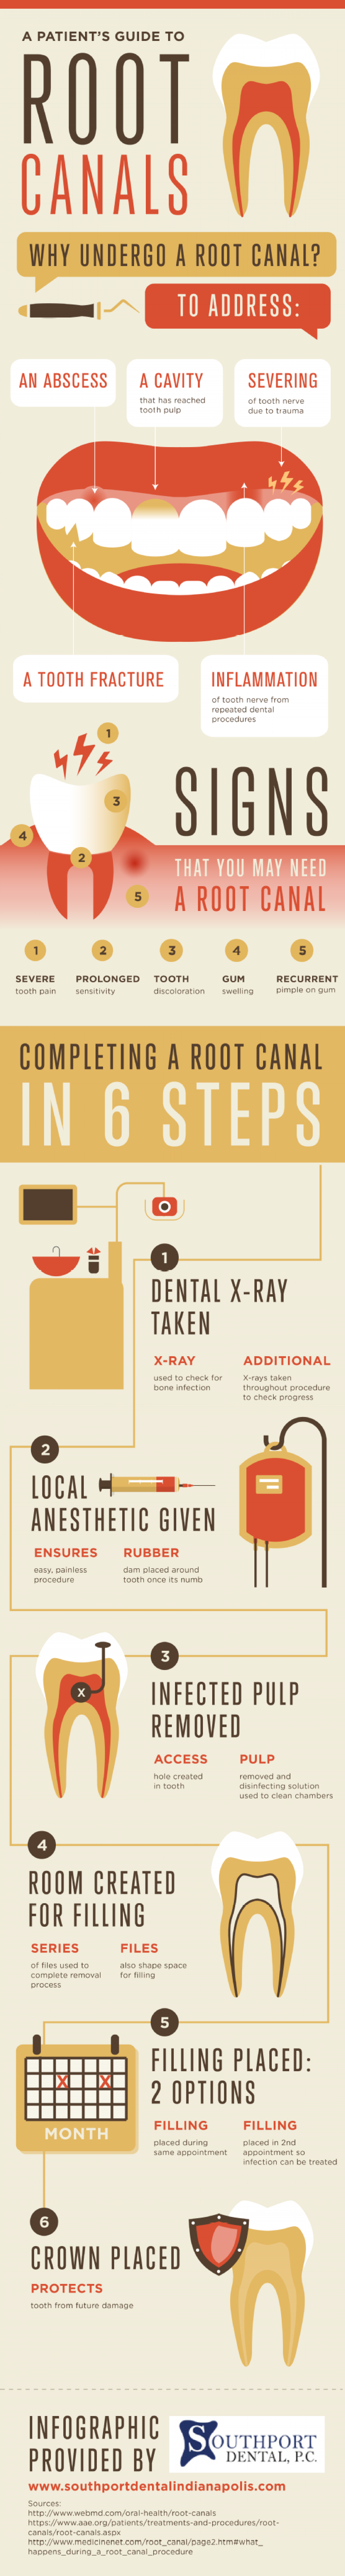 A Patient's Guide to Root Canals  Infographic